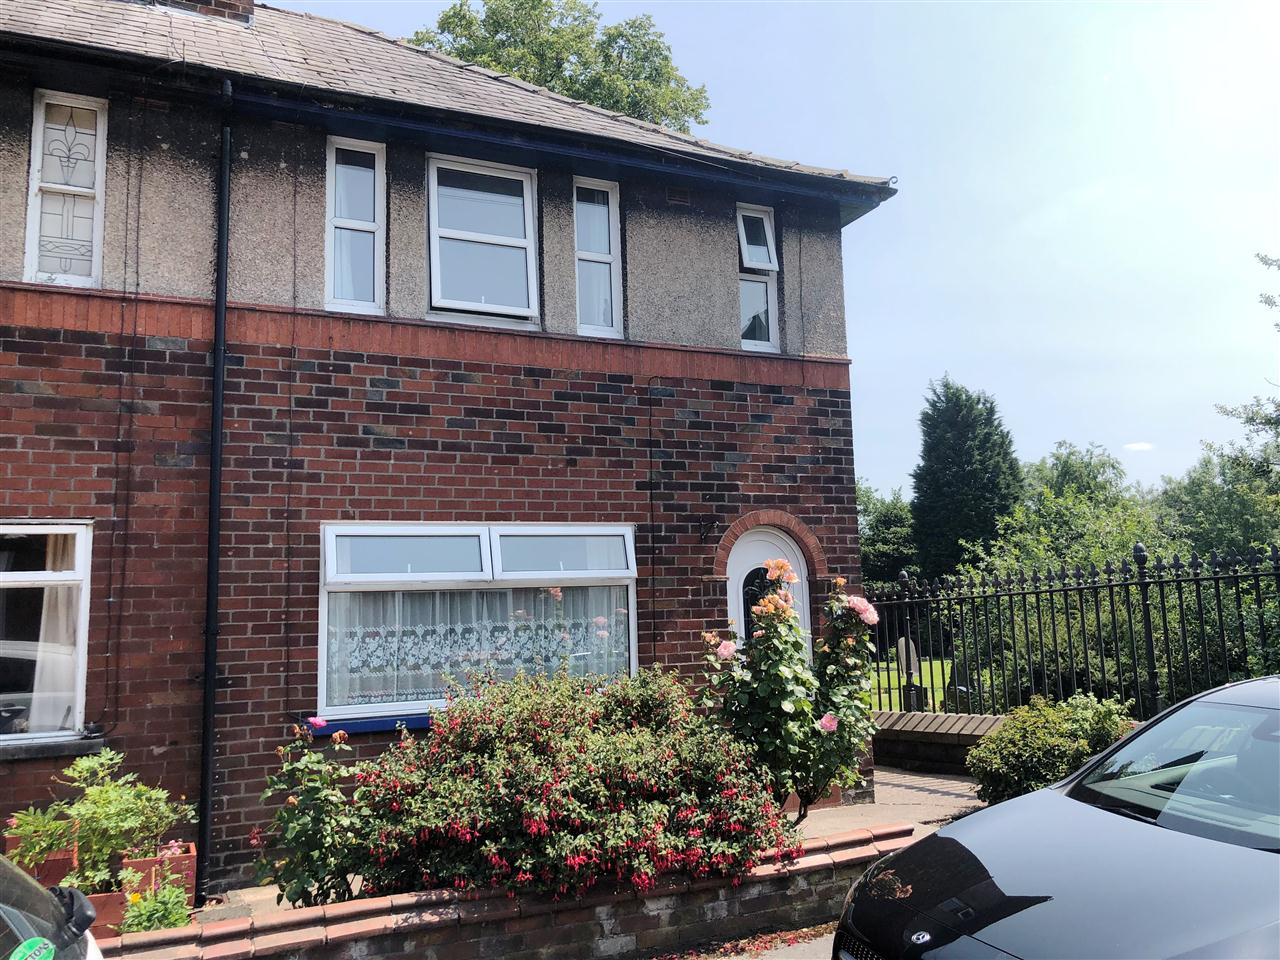 3 bed semi-detached for sale in Chapel Street, Adlington, PR7